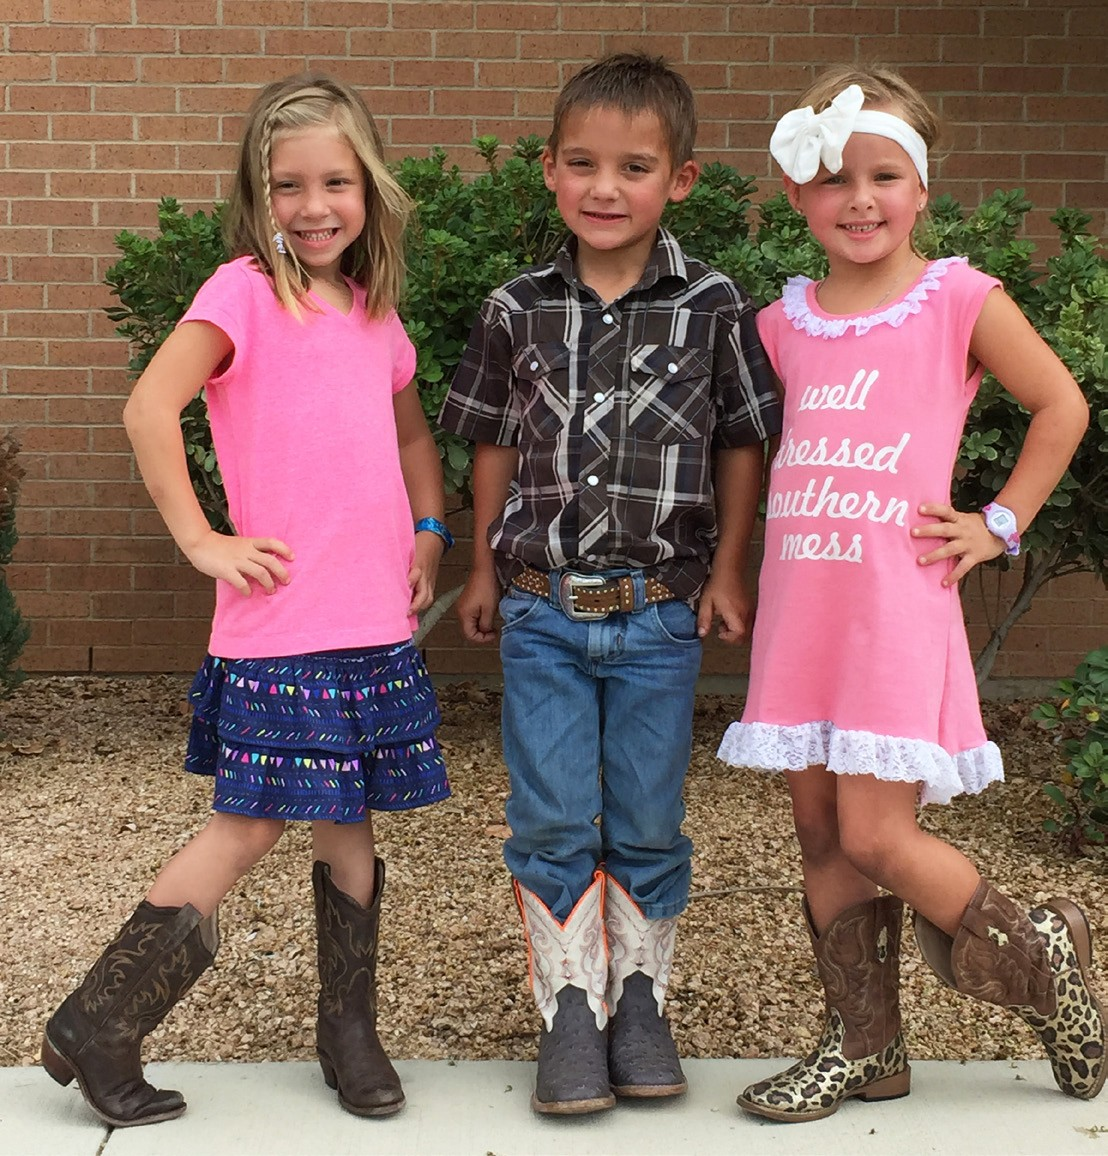 These boot-wearing cuties, Cheyene McClaugherty, John Wayne Niemetz and Kylie Derby invite everyone to the 65th Tilden Rodeo. It will be held this Friday and Saturday, September 11-12 at 8 p.m.